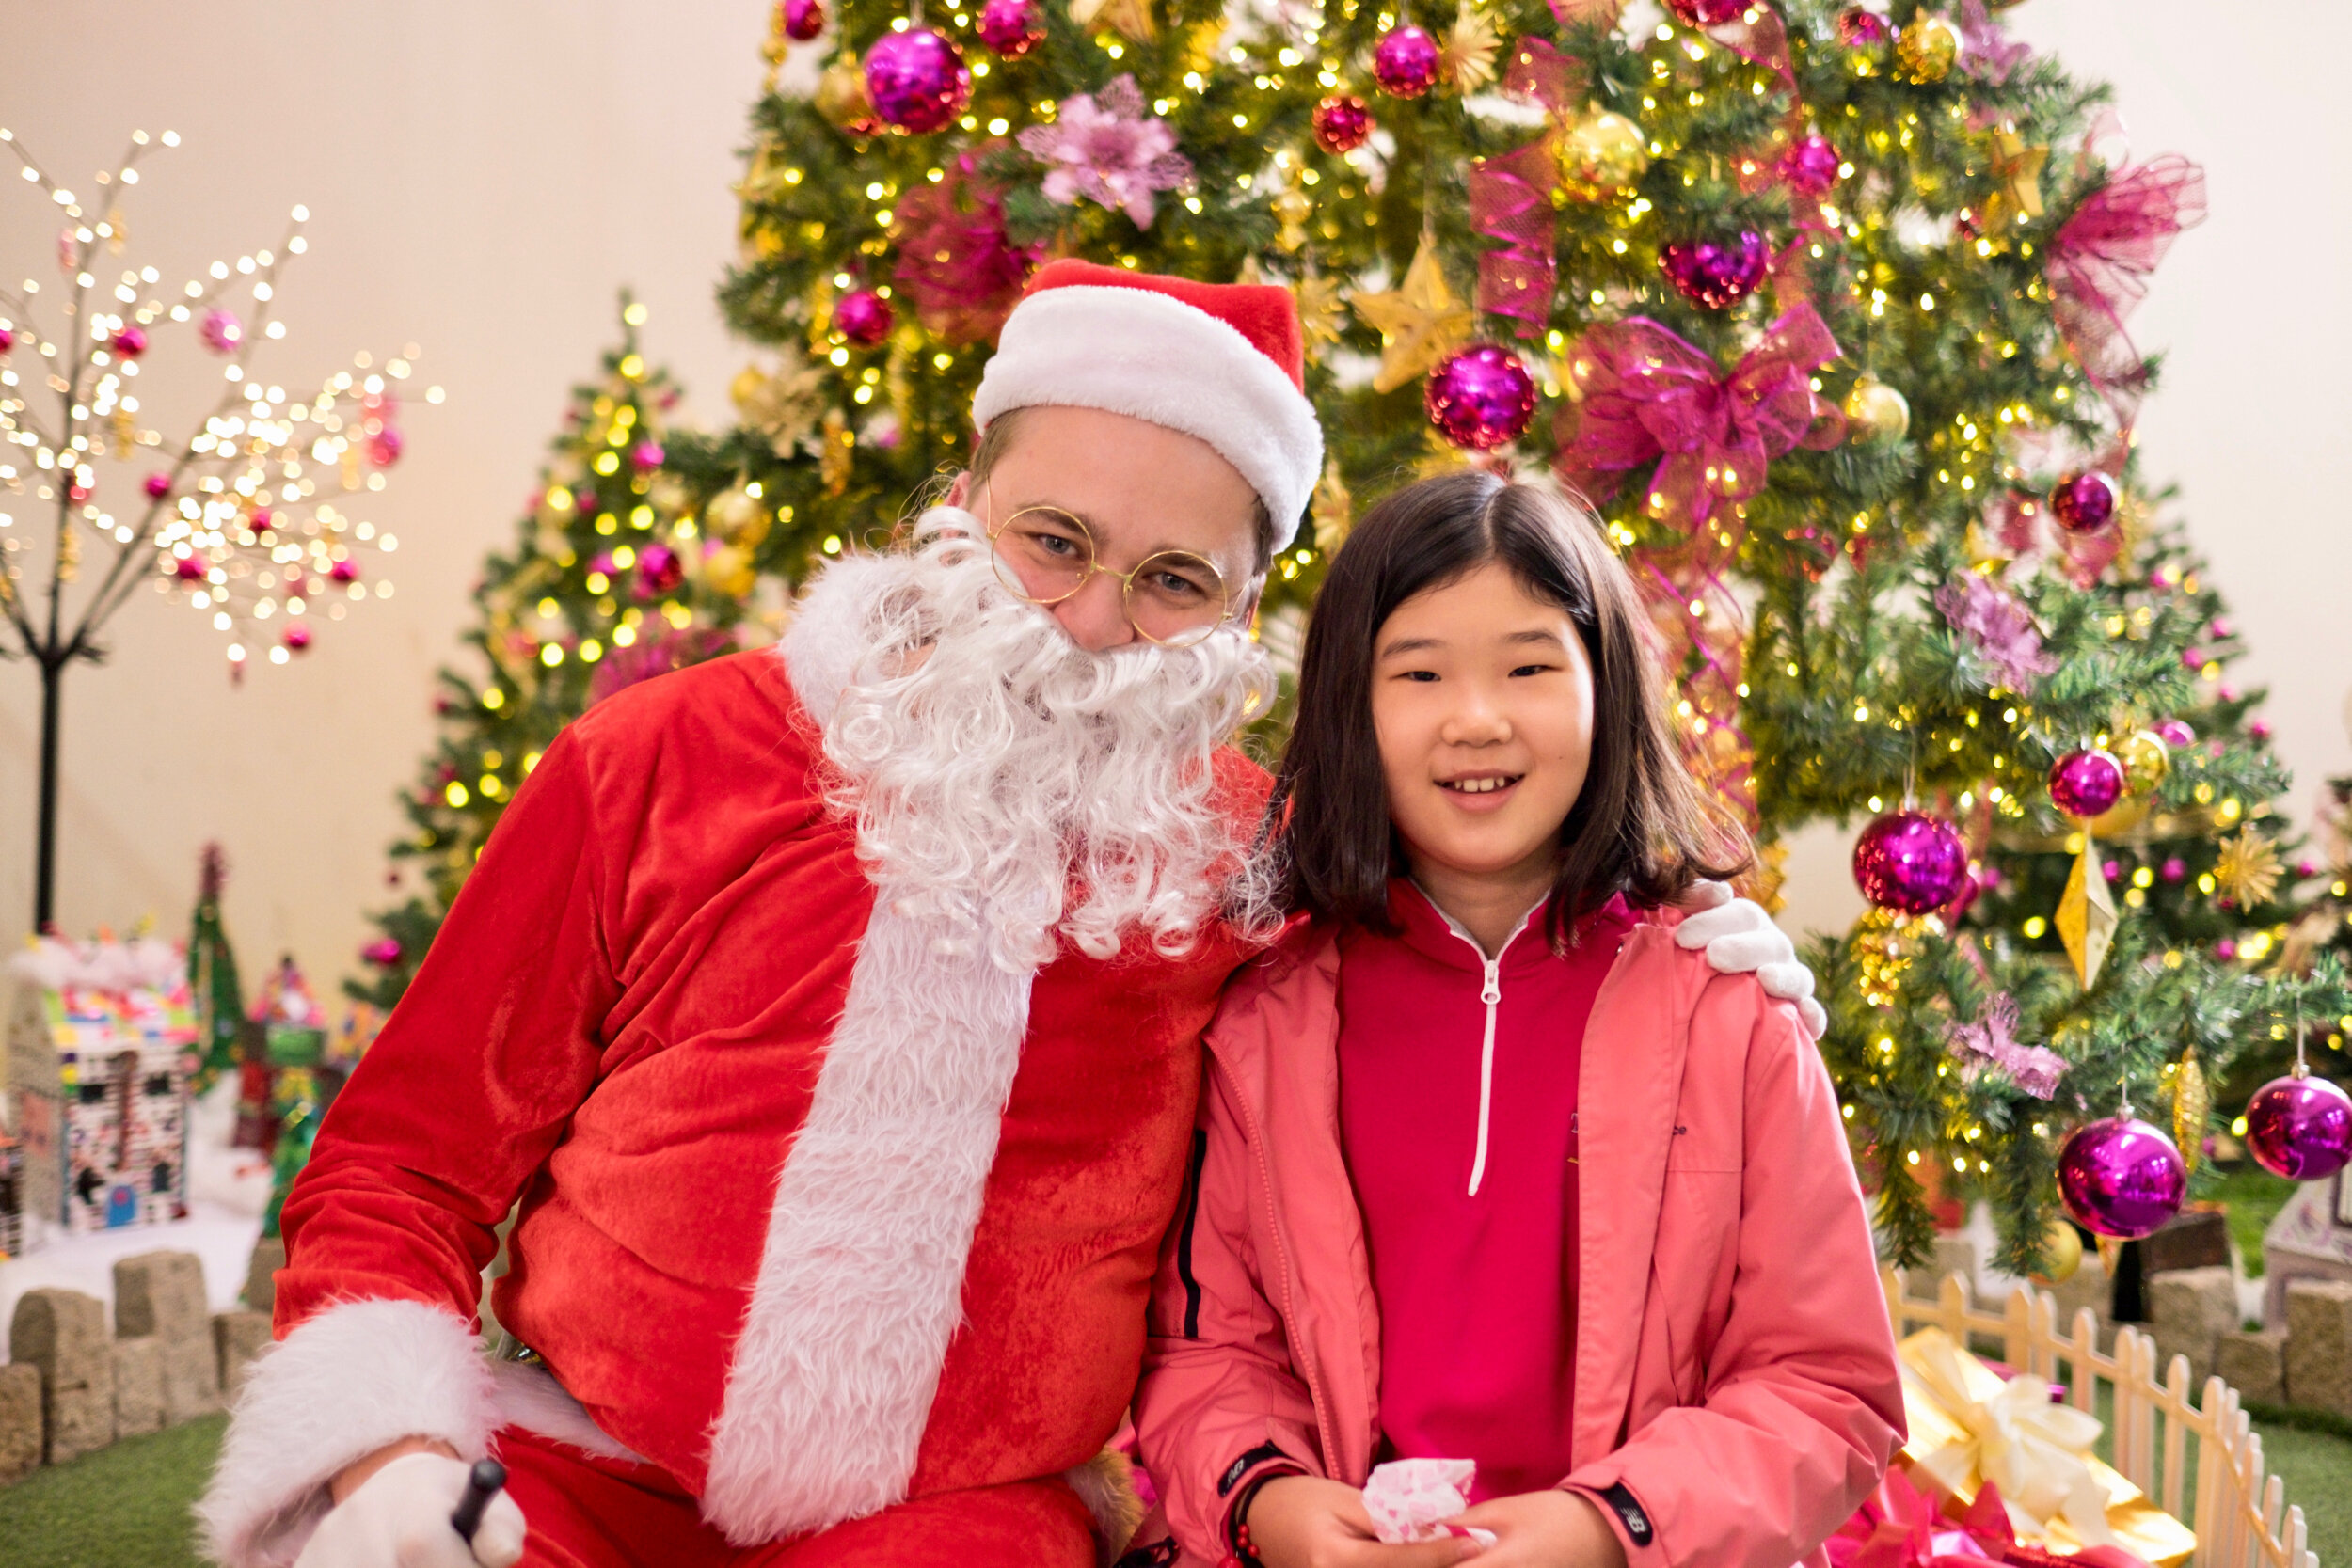 Photoshoot with Santa Clause-869.jpg